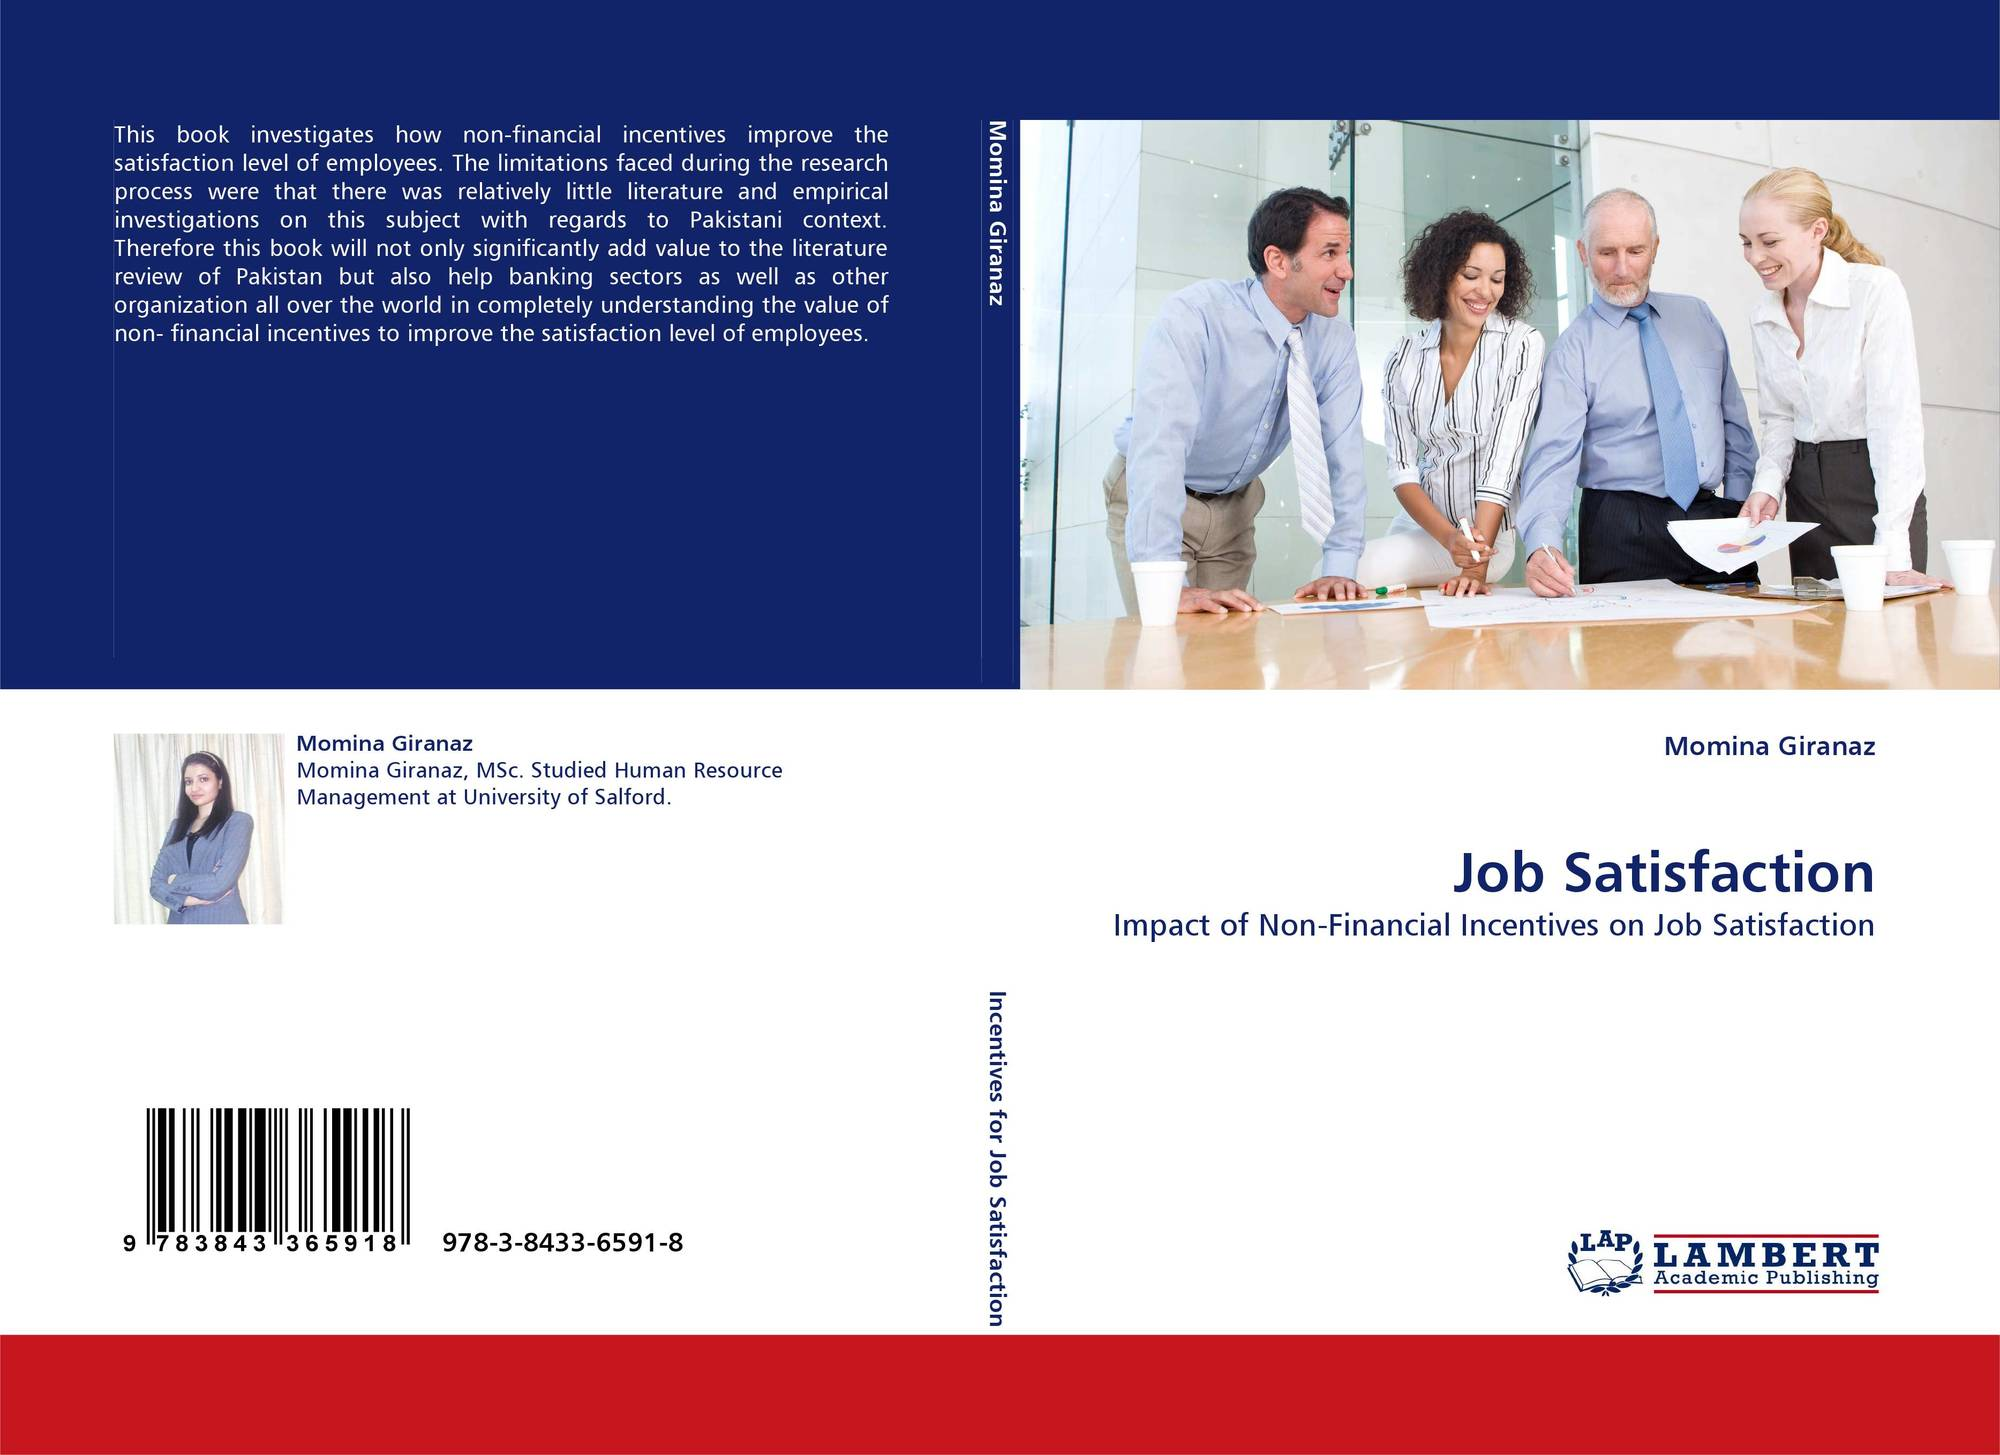 thesis on impact of incentives on job satisfaction The aim of this master thesis is to define performance impact of performance management system on customer satisfaction.